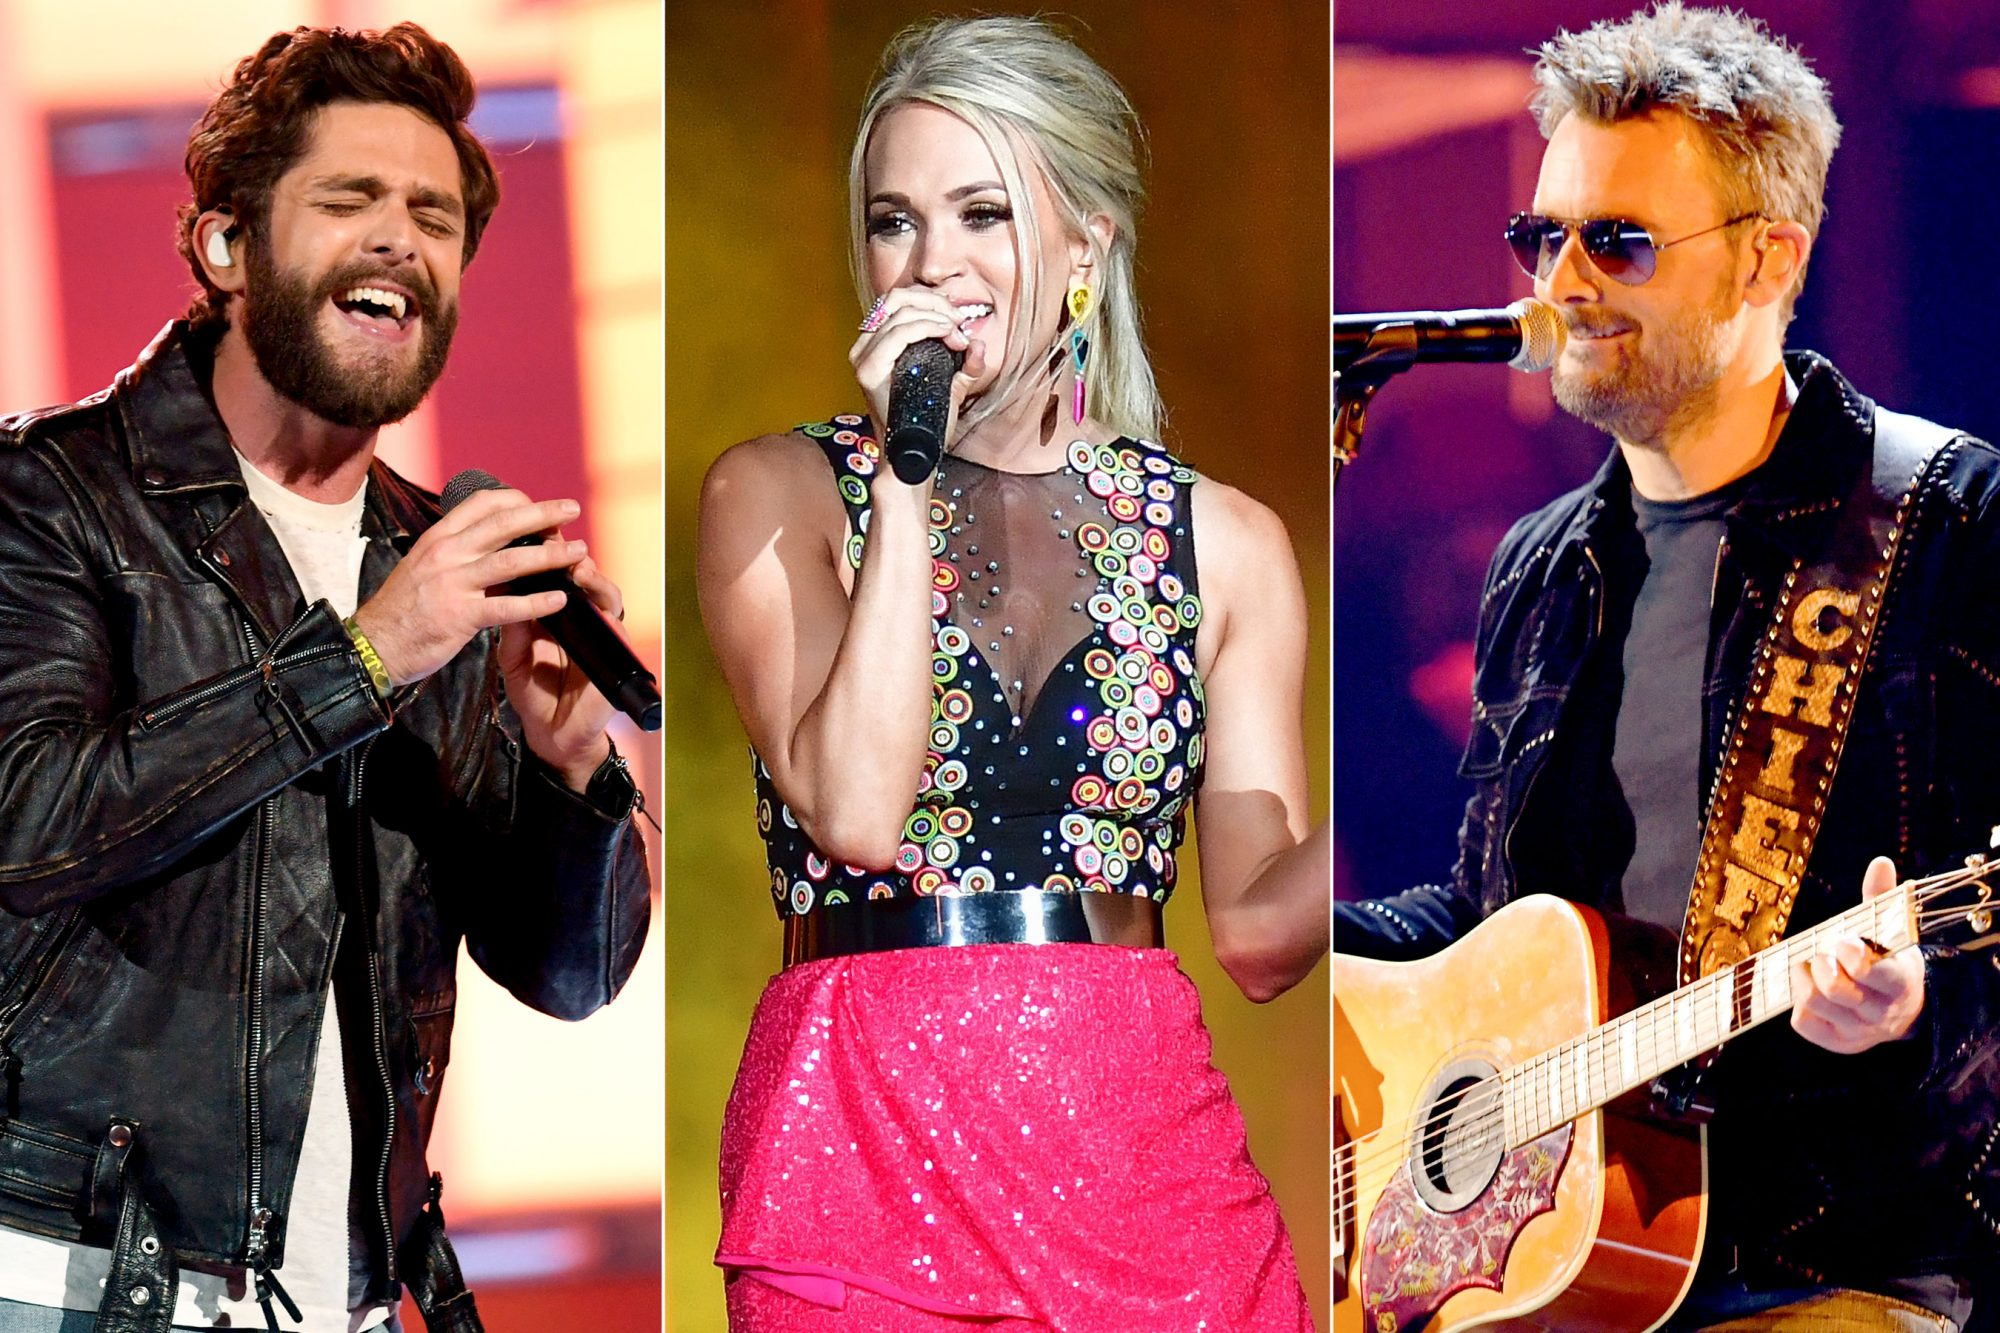 Thomas Rhett / Carrie Underwood / Eric Church